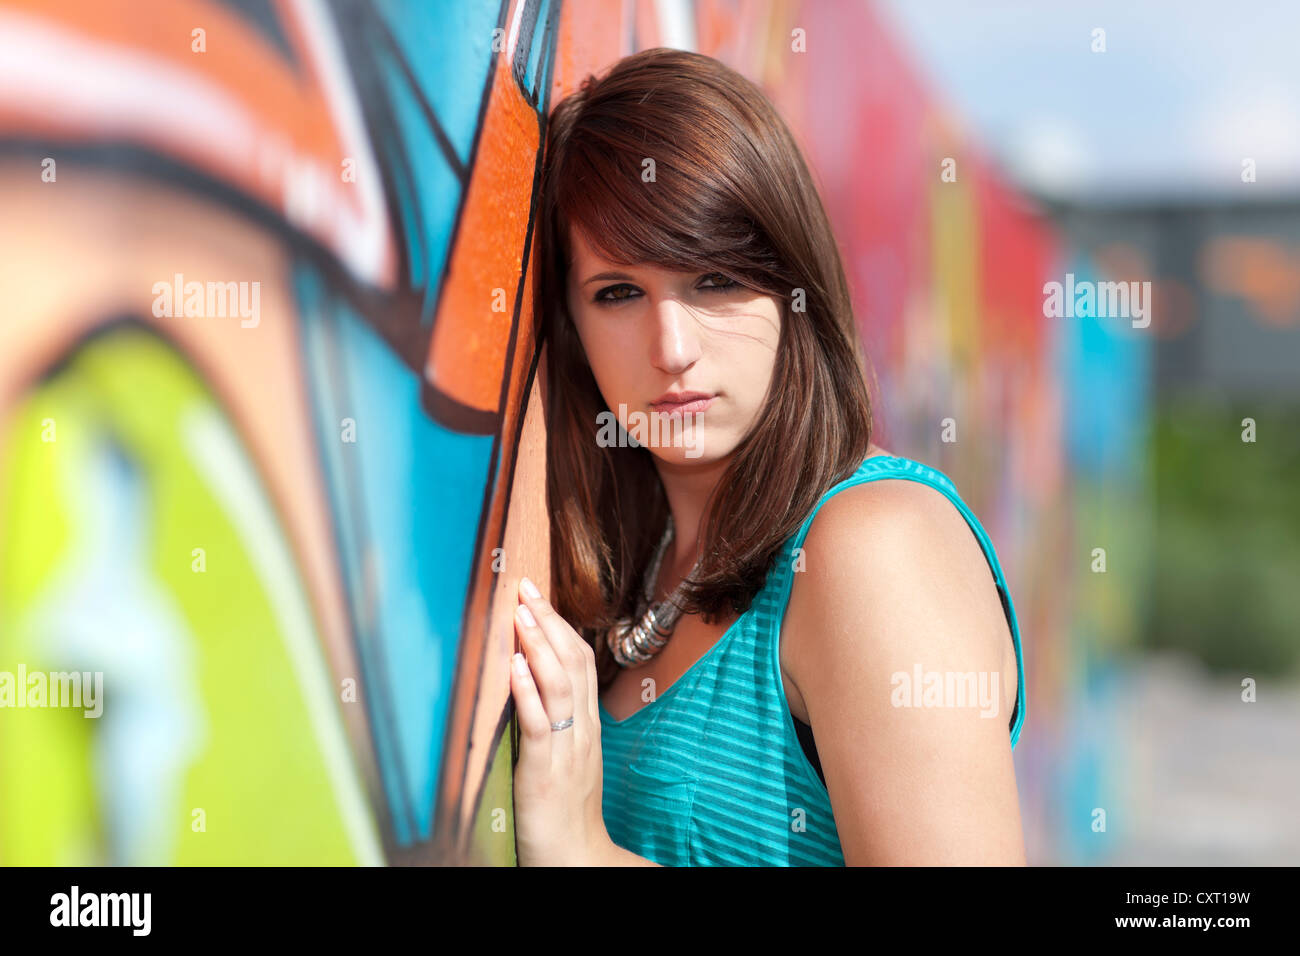 Young woman wearing a turquoise top, black leggings and high heels in front of wall with graffiti, portrait - Stock Image